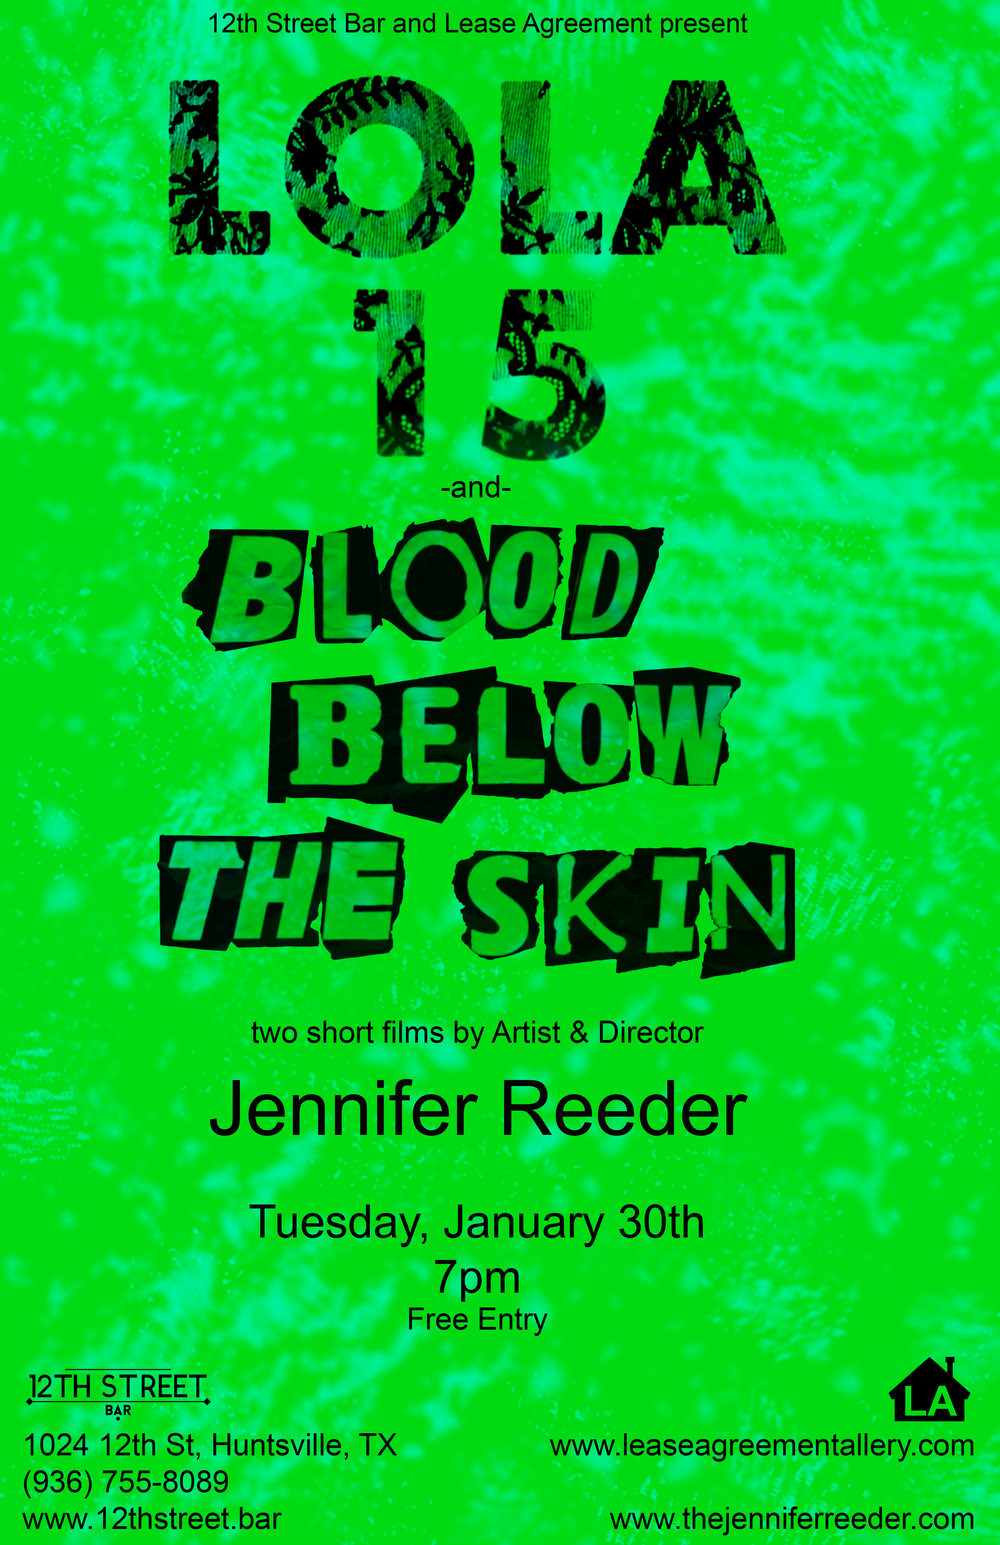 "Jennifer Reeder - The 12th Street Bar and Lease Agreement present two short films, Lola, 15 (5 min, 2017) and Blood Below the Skin (32 min, 2015) by artist and director Jennifer Reeder.Jennifer Reeder constructs personal films about relationships, trauma and coping. Her award-winning narratives are innovative and borrow from a range of forms including after school specials, amateur music videos and magical realism. These films have shown consistently around the world, including the Sundance Film Festival, The Berlin Film Festival, The Venice Biennale and The Whitney Biennial.She recently founded a social justice initiative called TRACERS BOOK CLUB which has been featured recently at the Museum of Contemporary Art in Chicago and won a Propeller Fund Grant for a year of radical programming around the theme of ""women's work.""Jennifer Reeder received an MFA from The School of the Art Institute of Chicago. She is currently an Associate Professor in Moving Image and the Head of the Art Department in the School of Art and Art History at the University of Illinois at Chicago. She lives in Indiana with her three young children.More about Reeder and her work can be found on her website:www.thejenniferreeder.comJanuary 30, 20187pmEntry is free21+12th Street Bar1024 12th St.Huntsville, Texas 77340www.12thstreet.barwww.leaseagreementgallery.com"